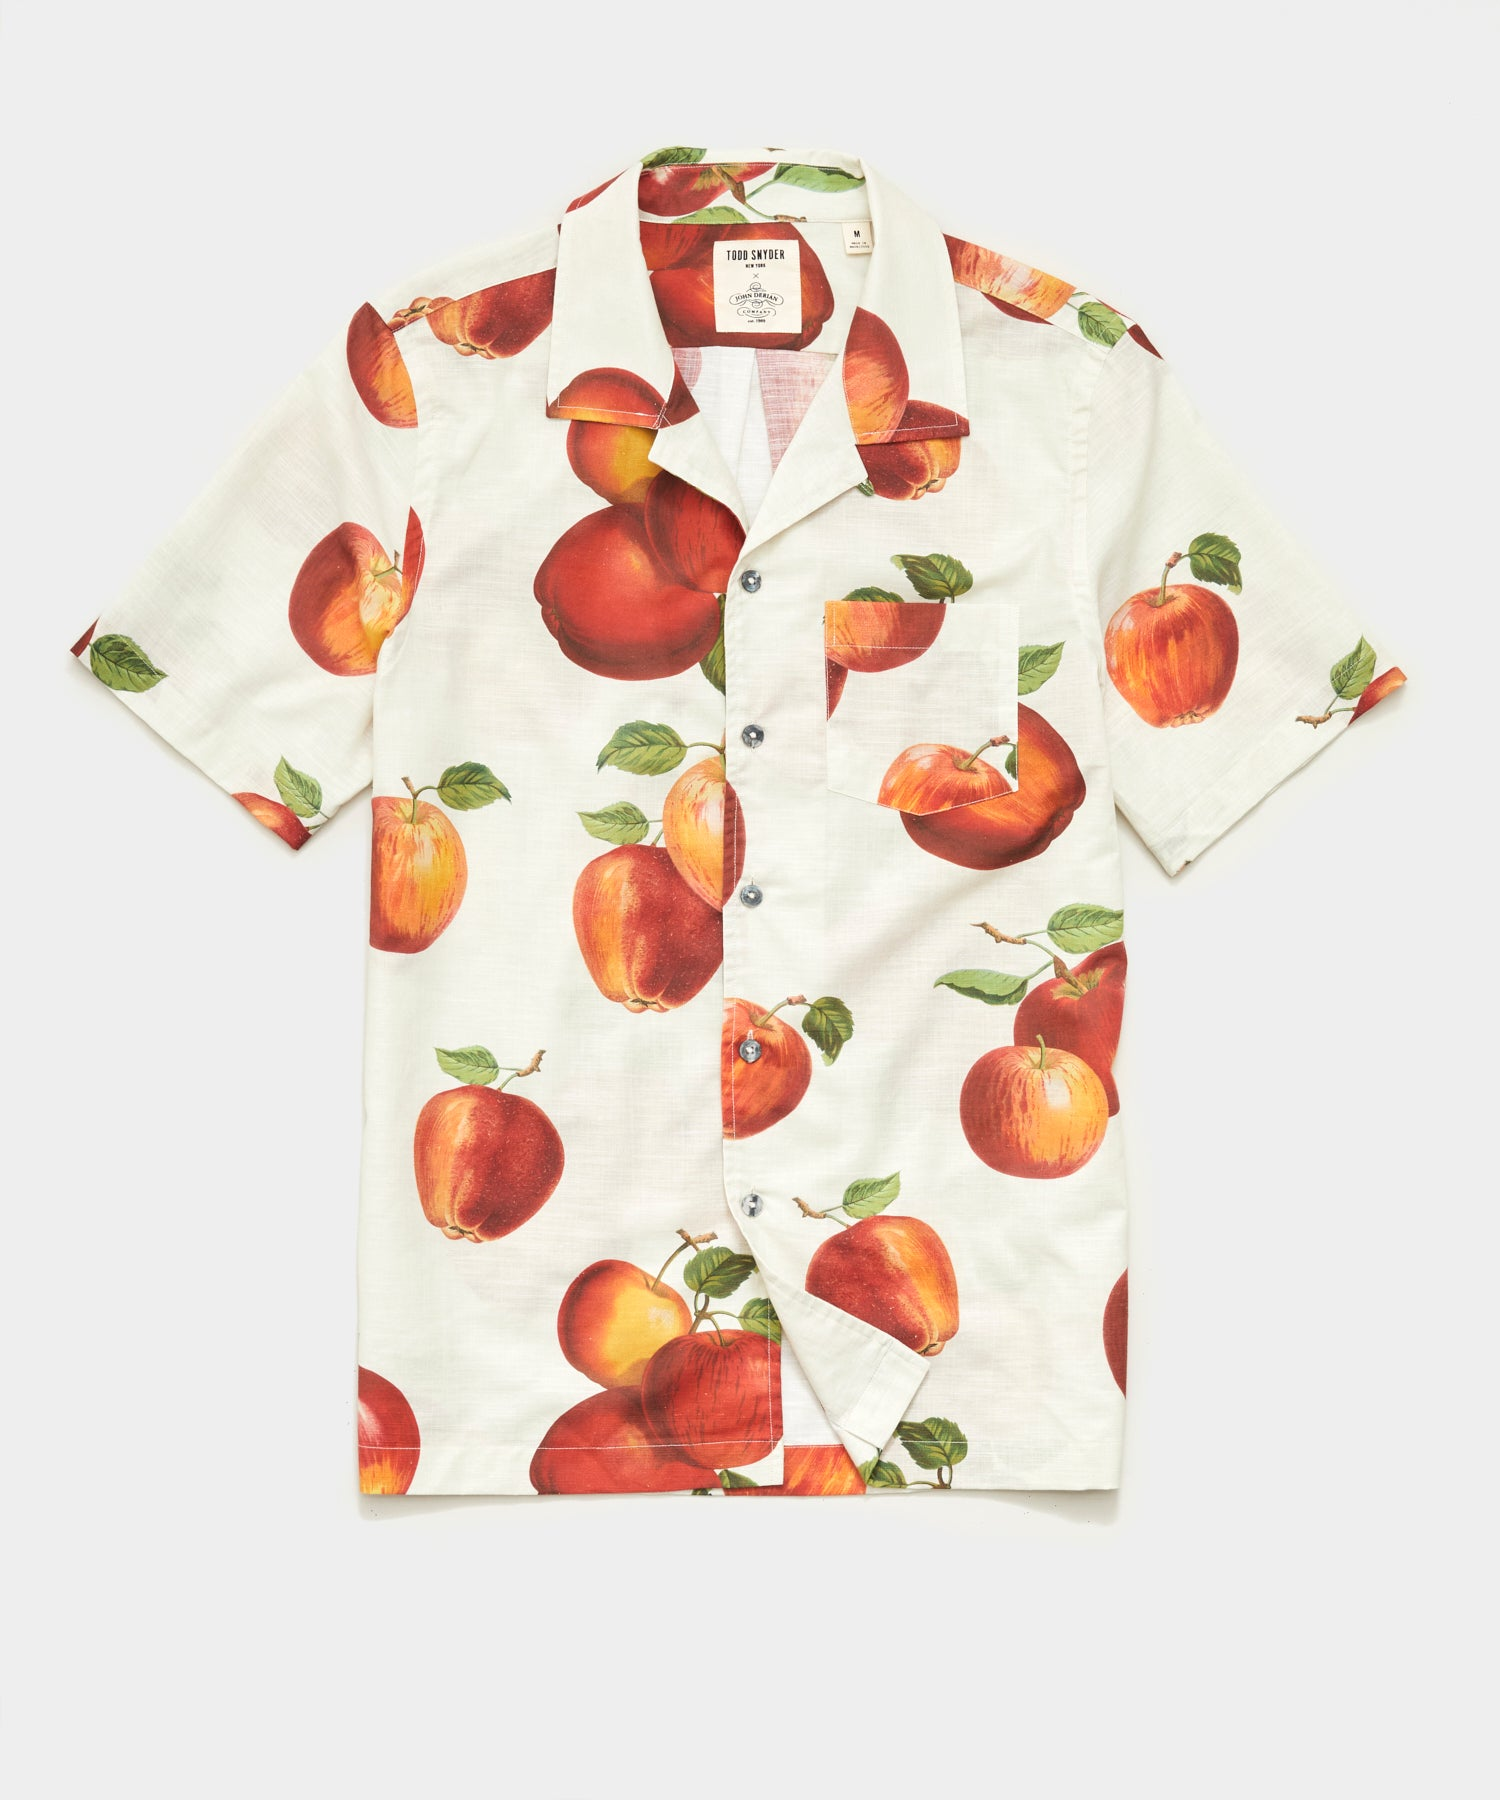 Todd Snyder x John Derian Apple Print Shirt